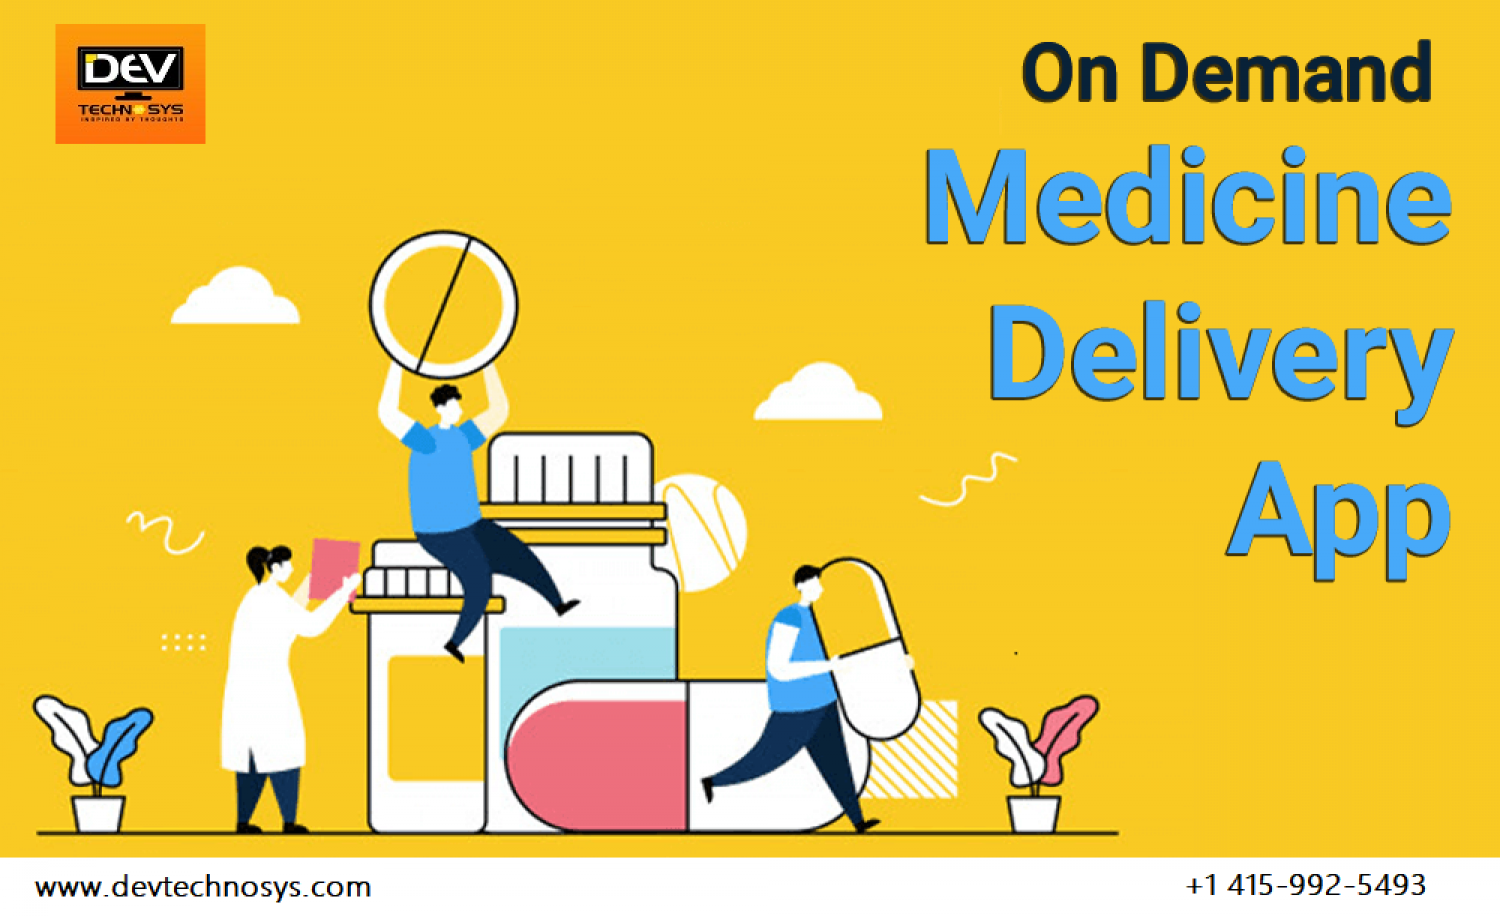 Medicine Delivery App Development Infographic